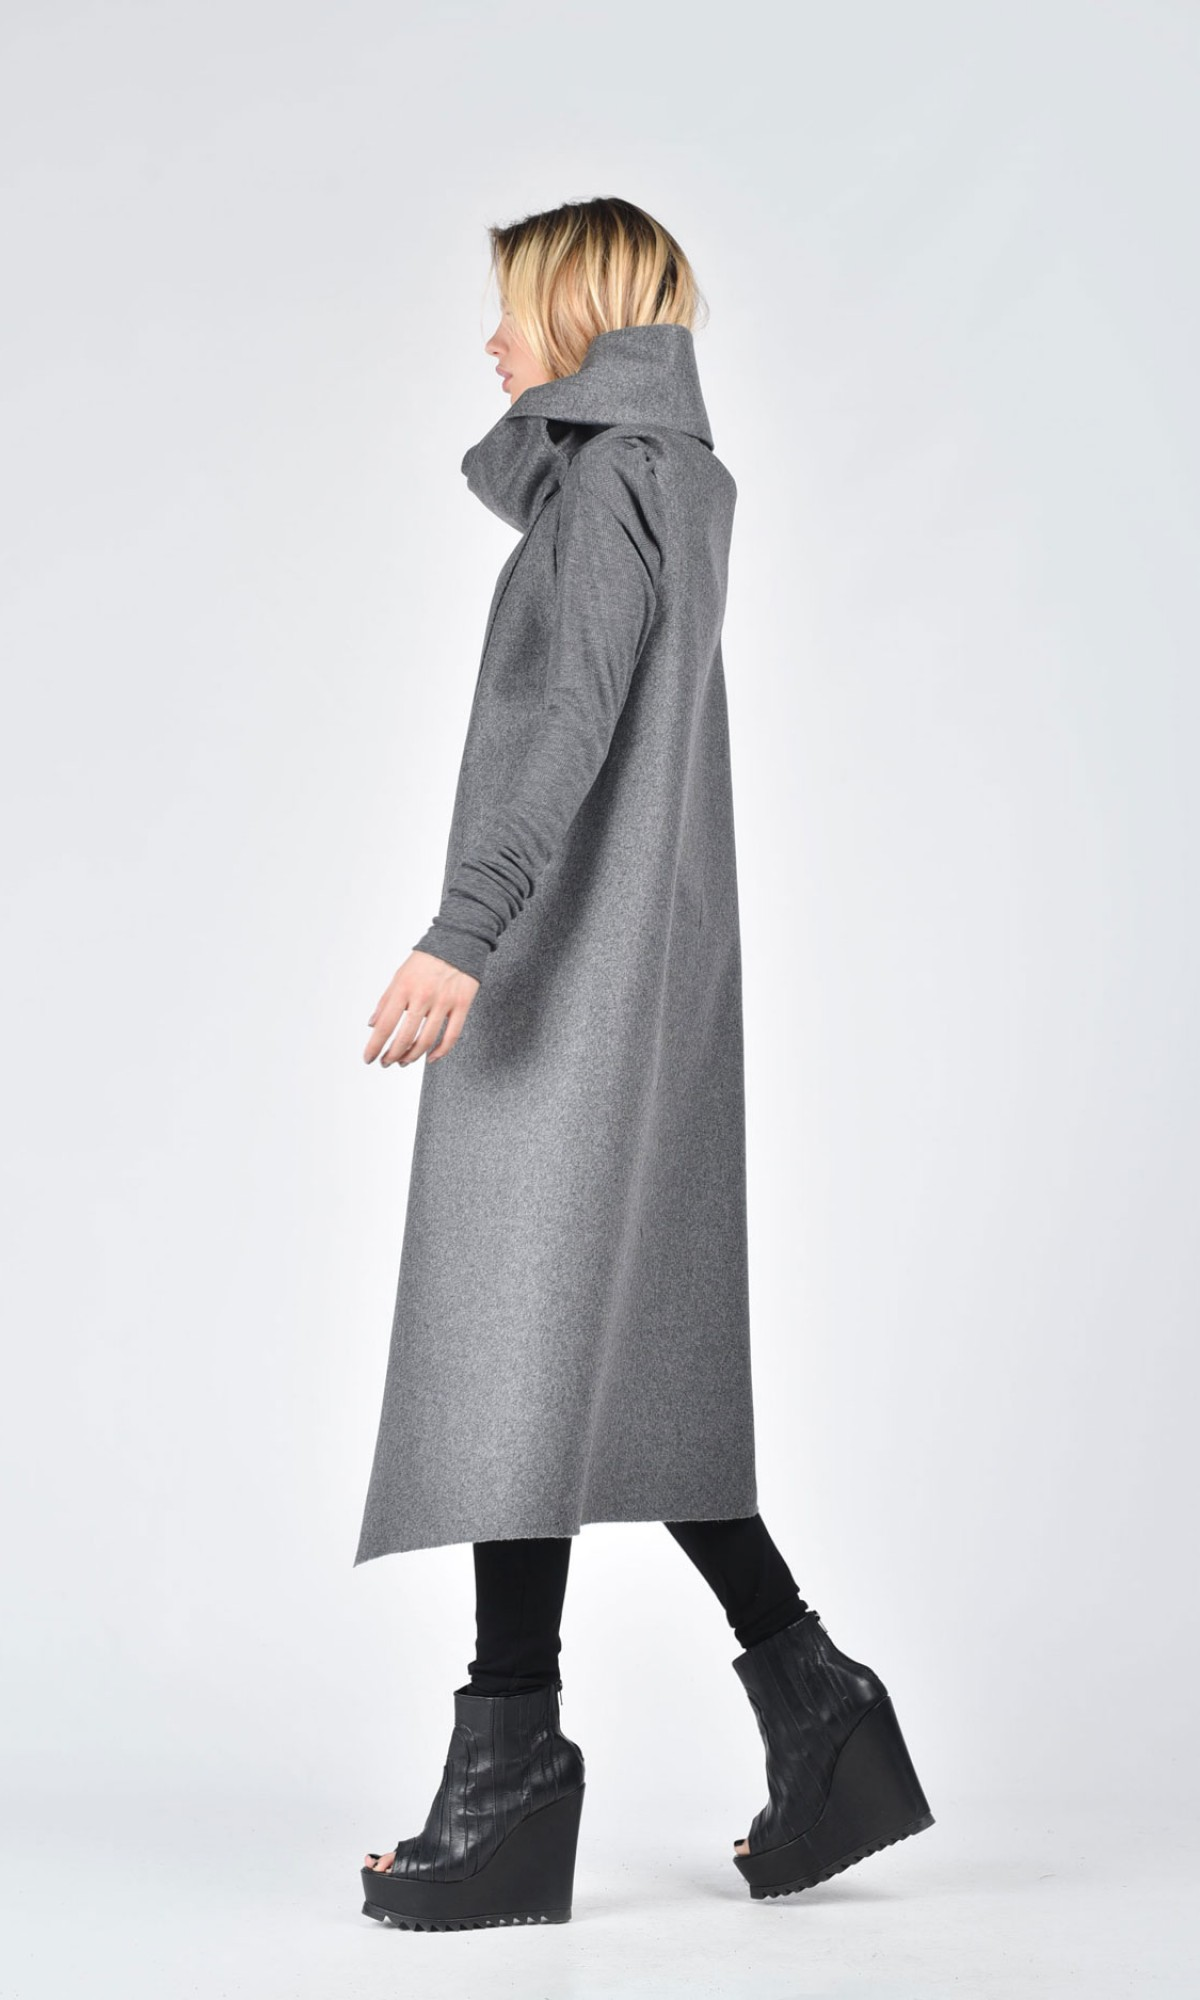 bd33ecc66414e Soft Grey Sleeveless Coat A07086 Soft Grey Sleeveless Coat A07086 ...